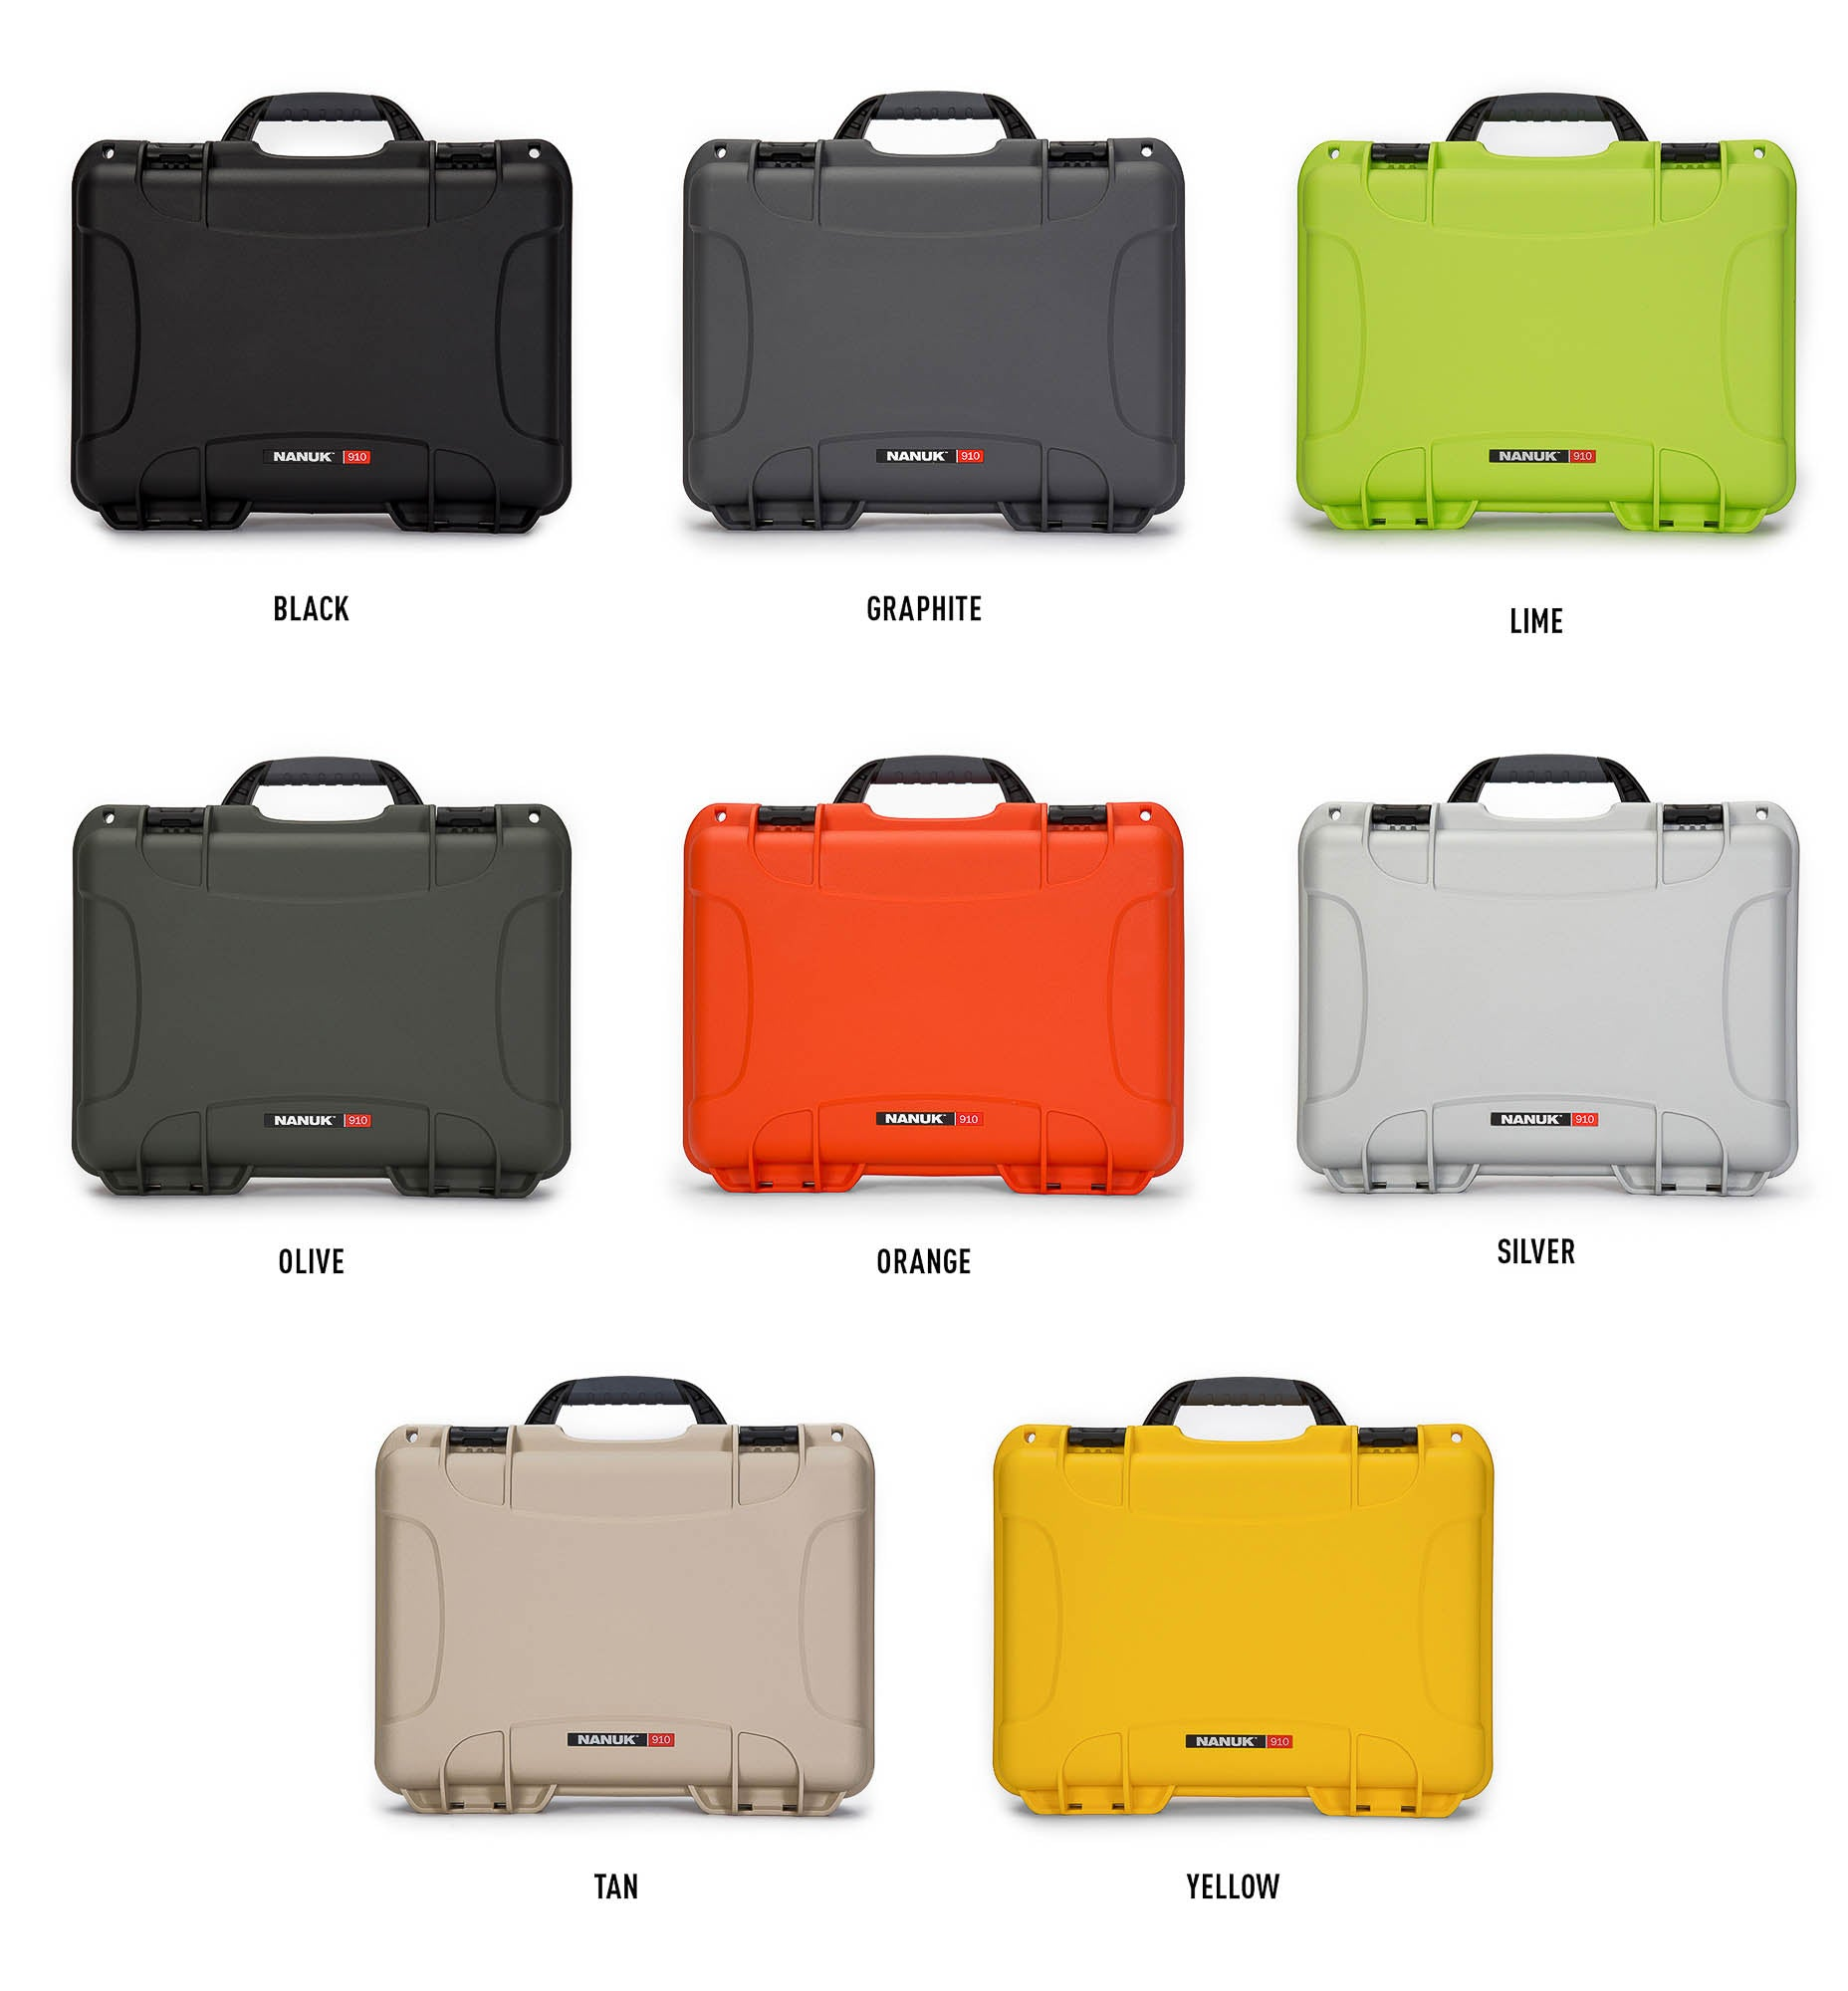 Nanuk 910 8 colors selection